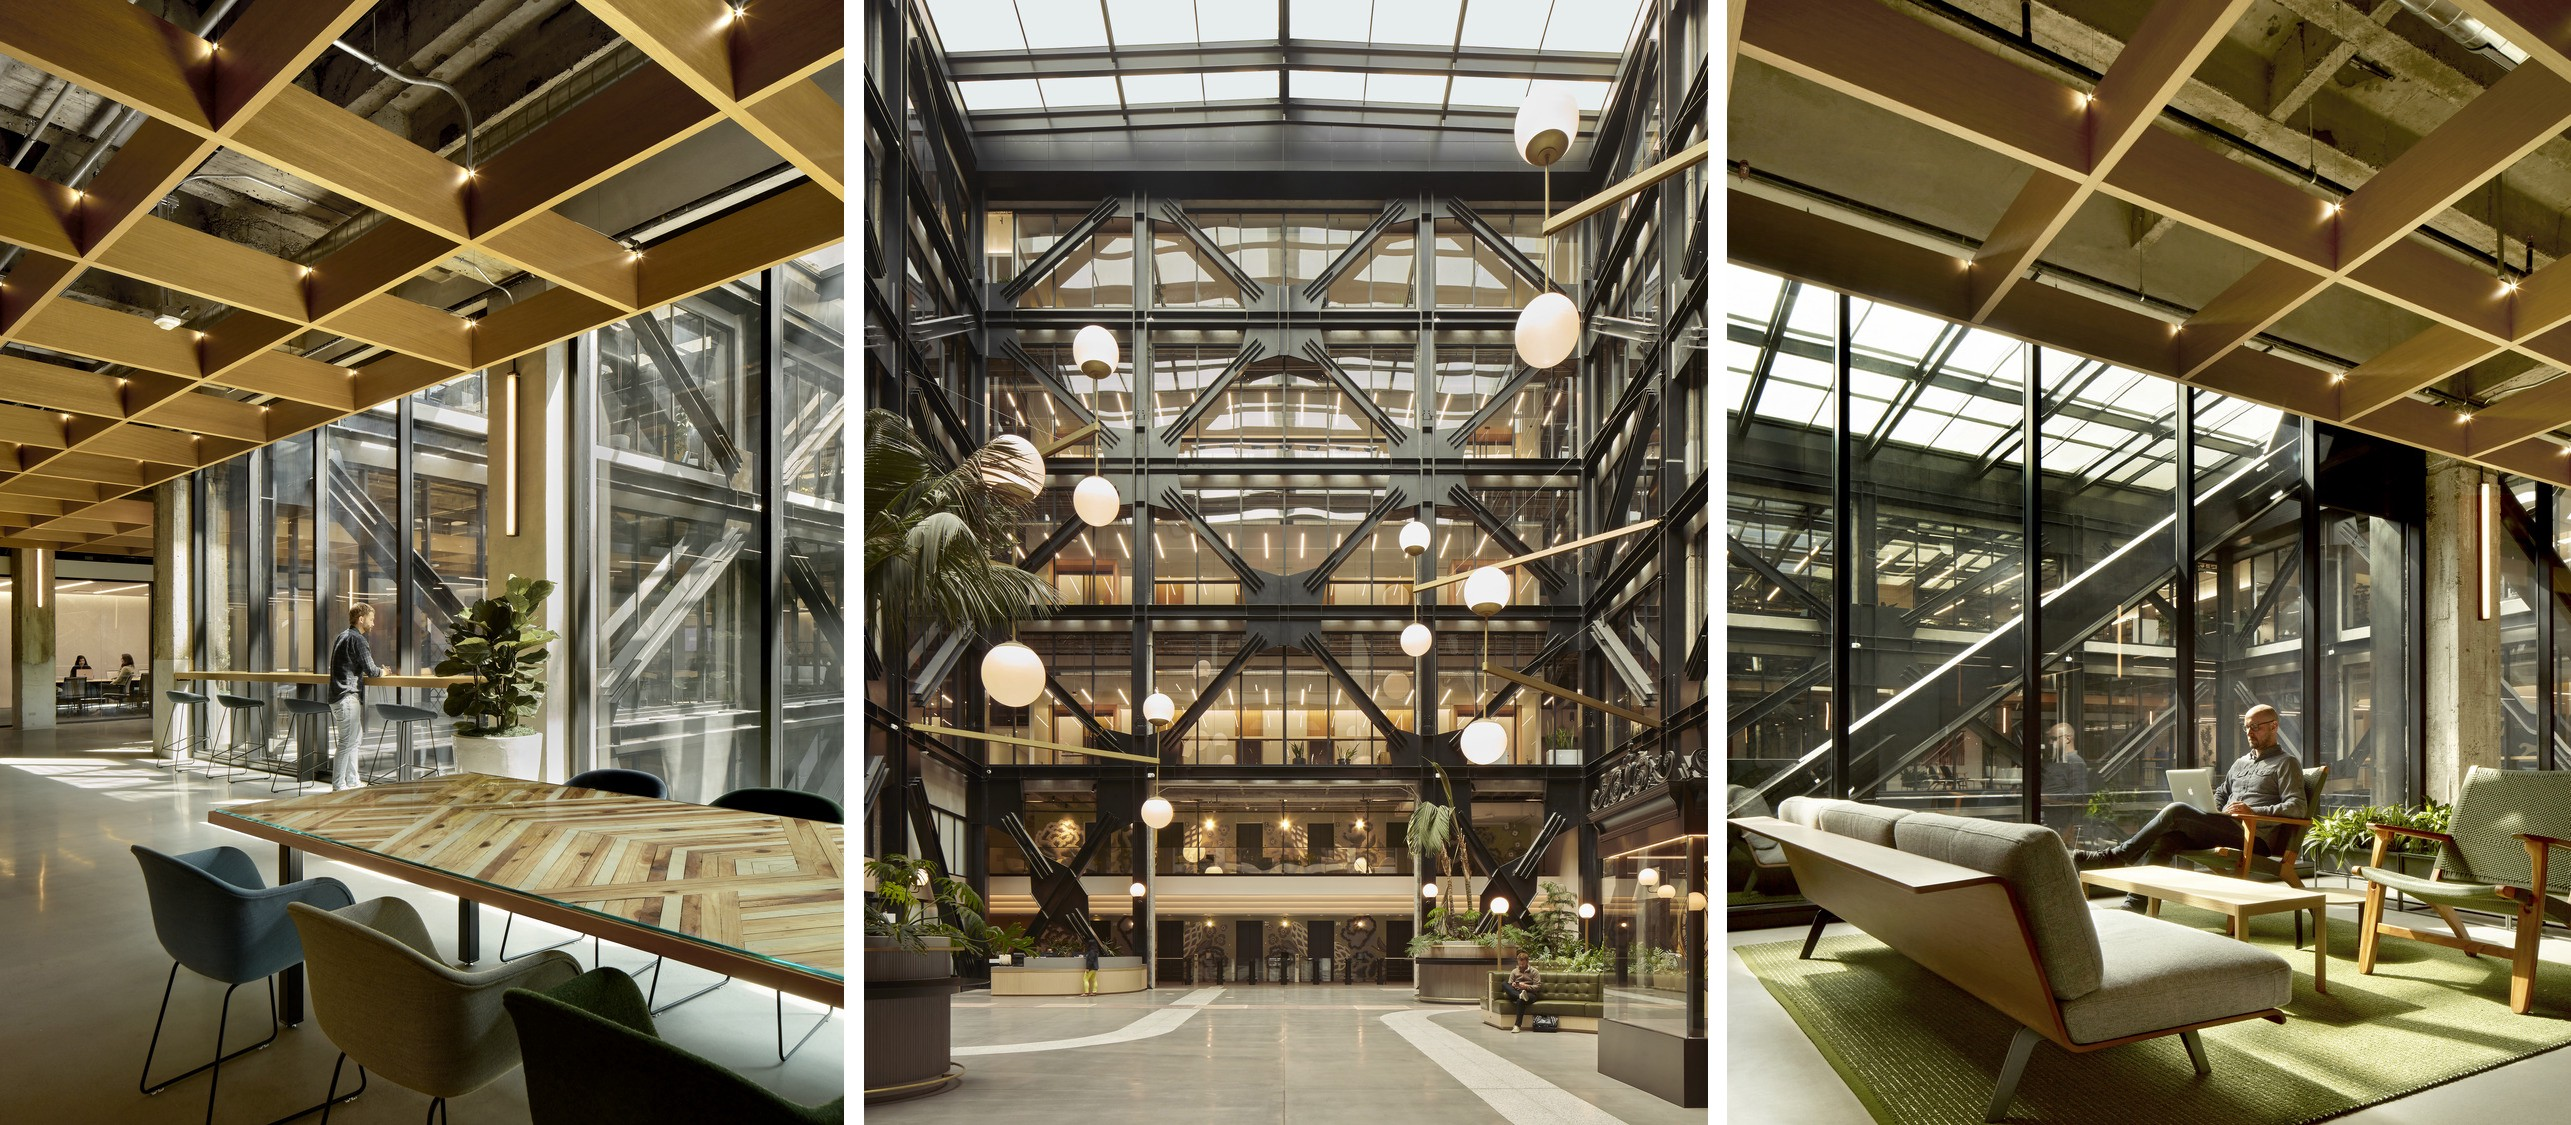 Work environments overlooking a central atrium